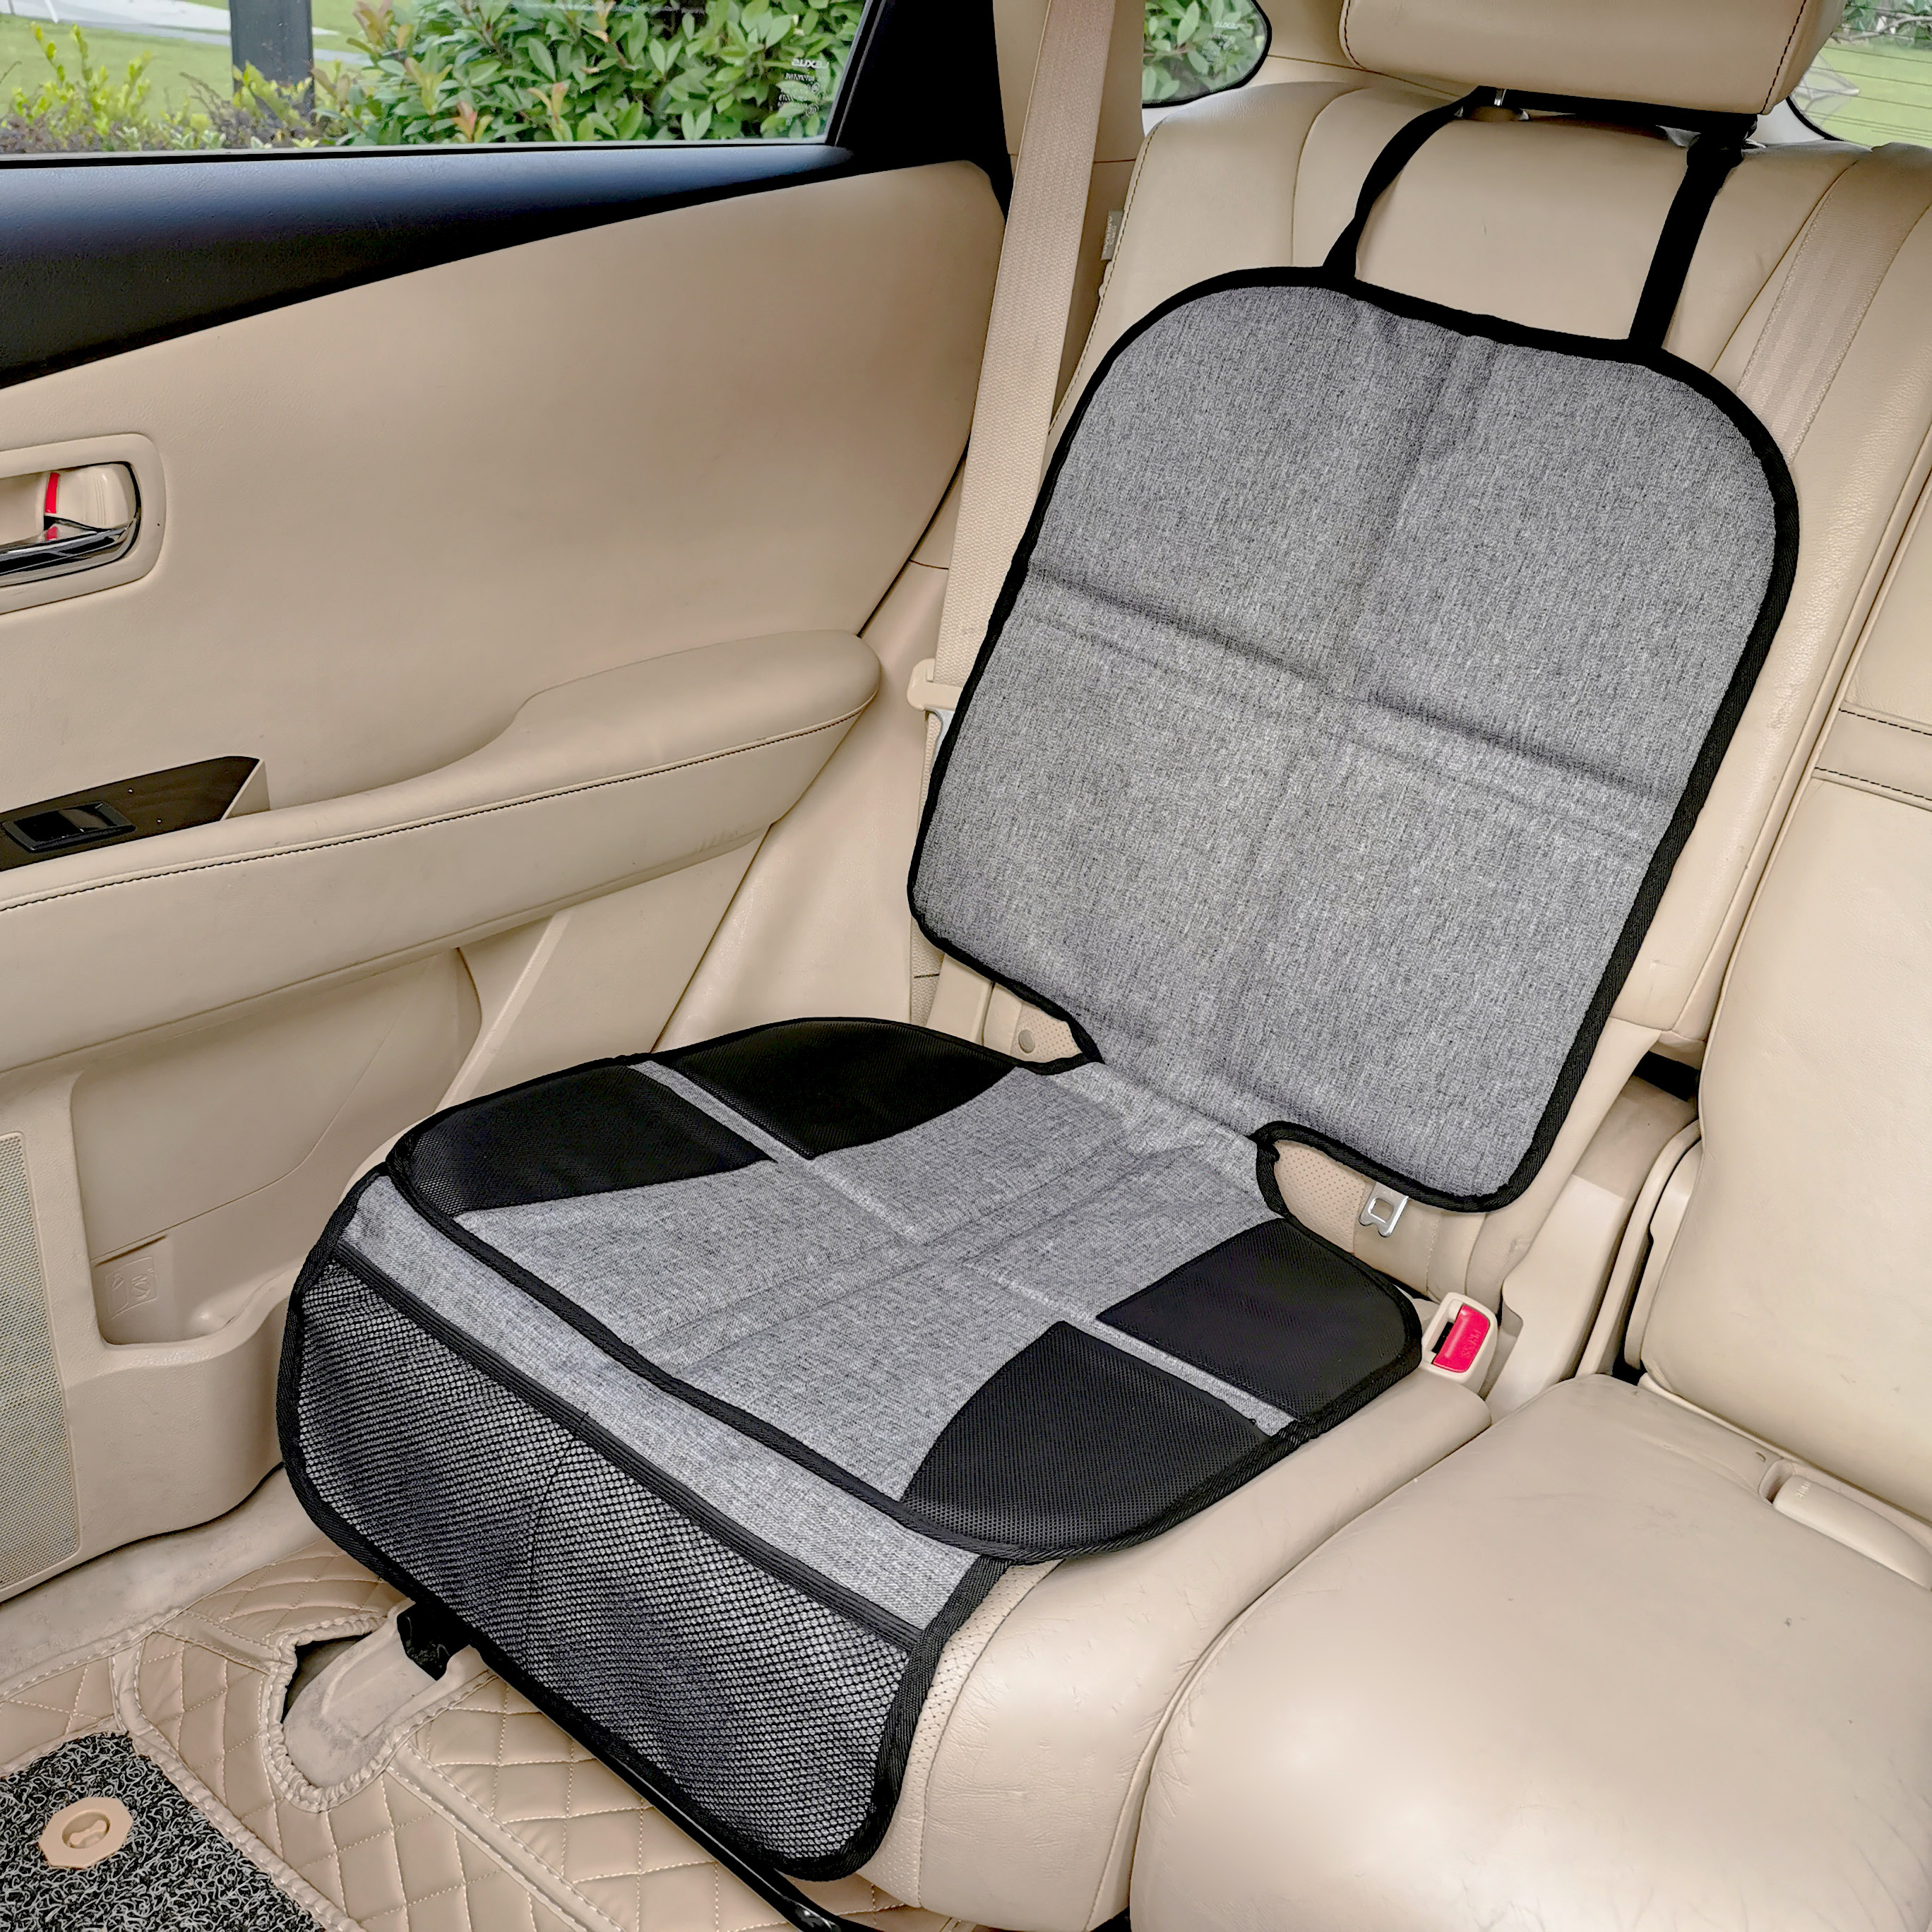 Hot selling Duurzaam Dikste Padding Waterdichte 600D Stof car seat protector